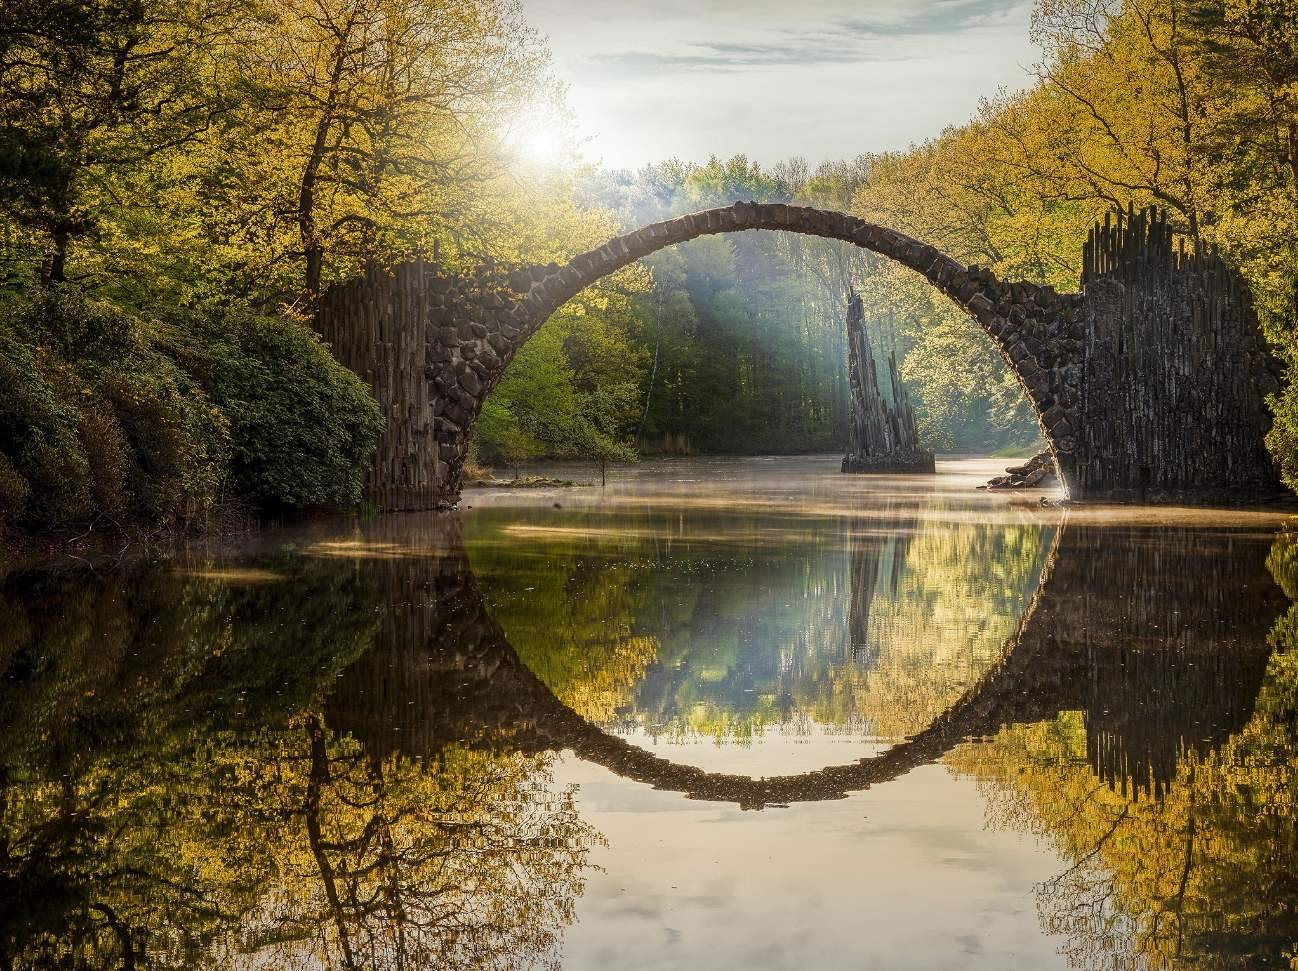 The bridge is in Dahu park, Taipei, Taiwan. It is very charming, especially at moon nights.